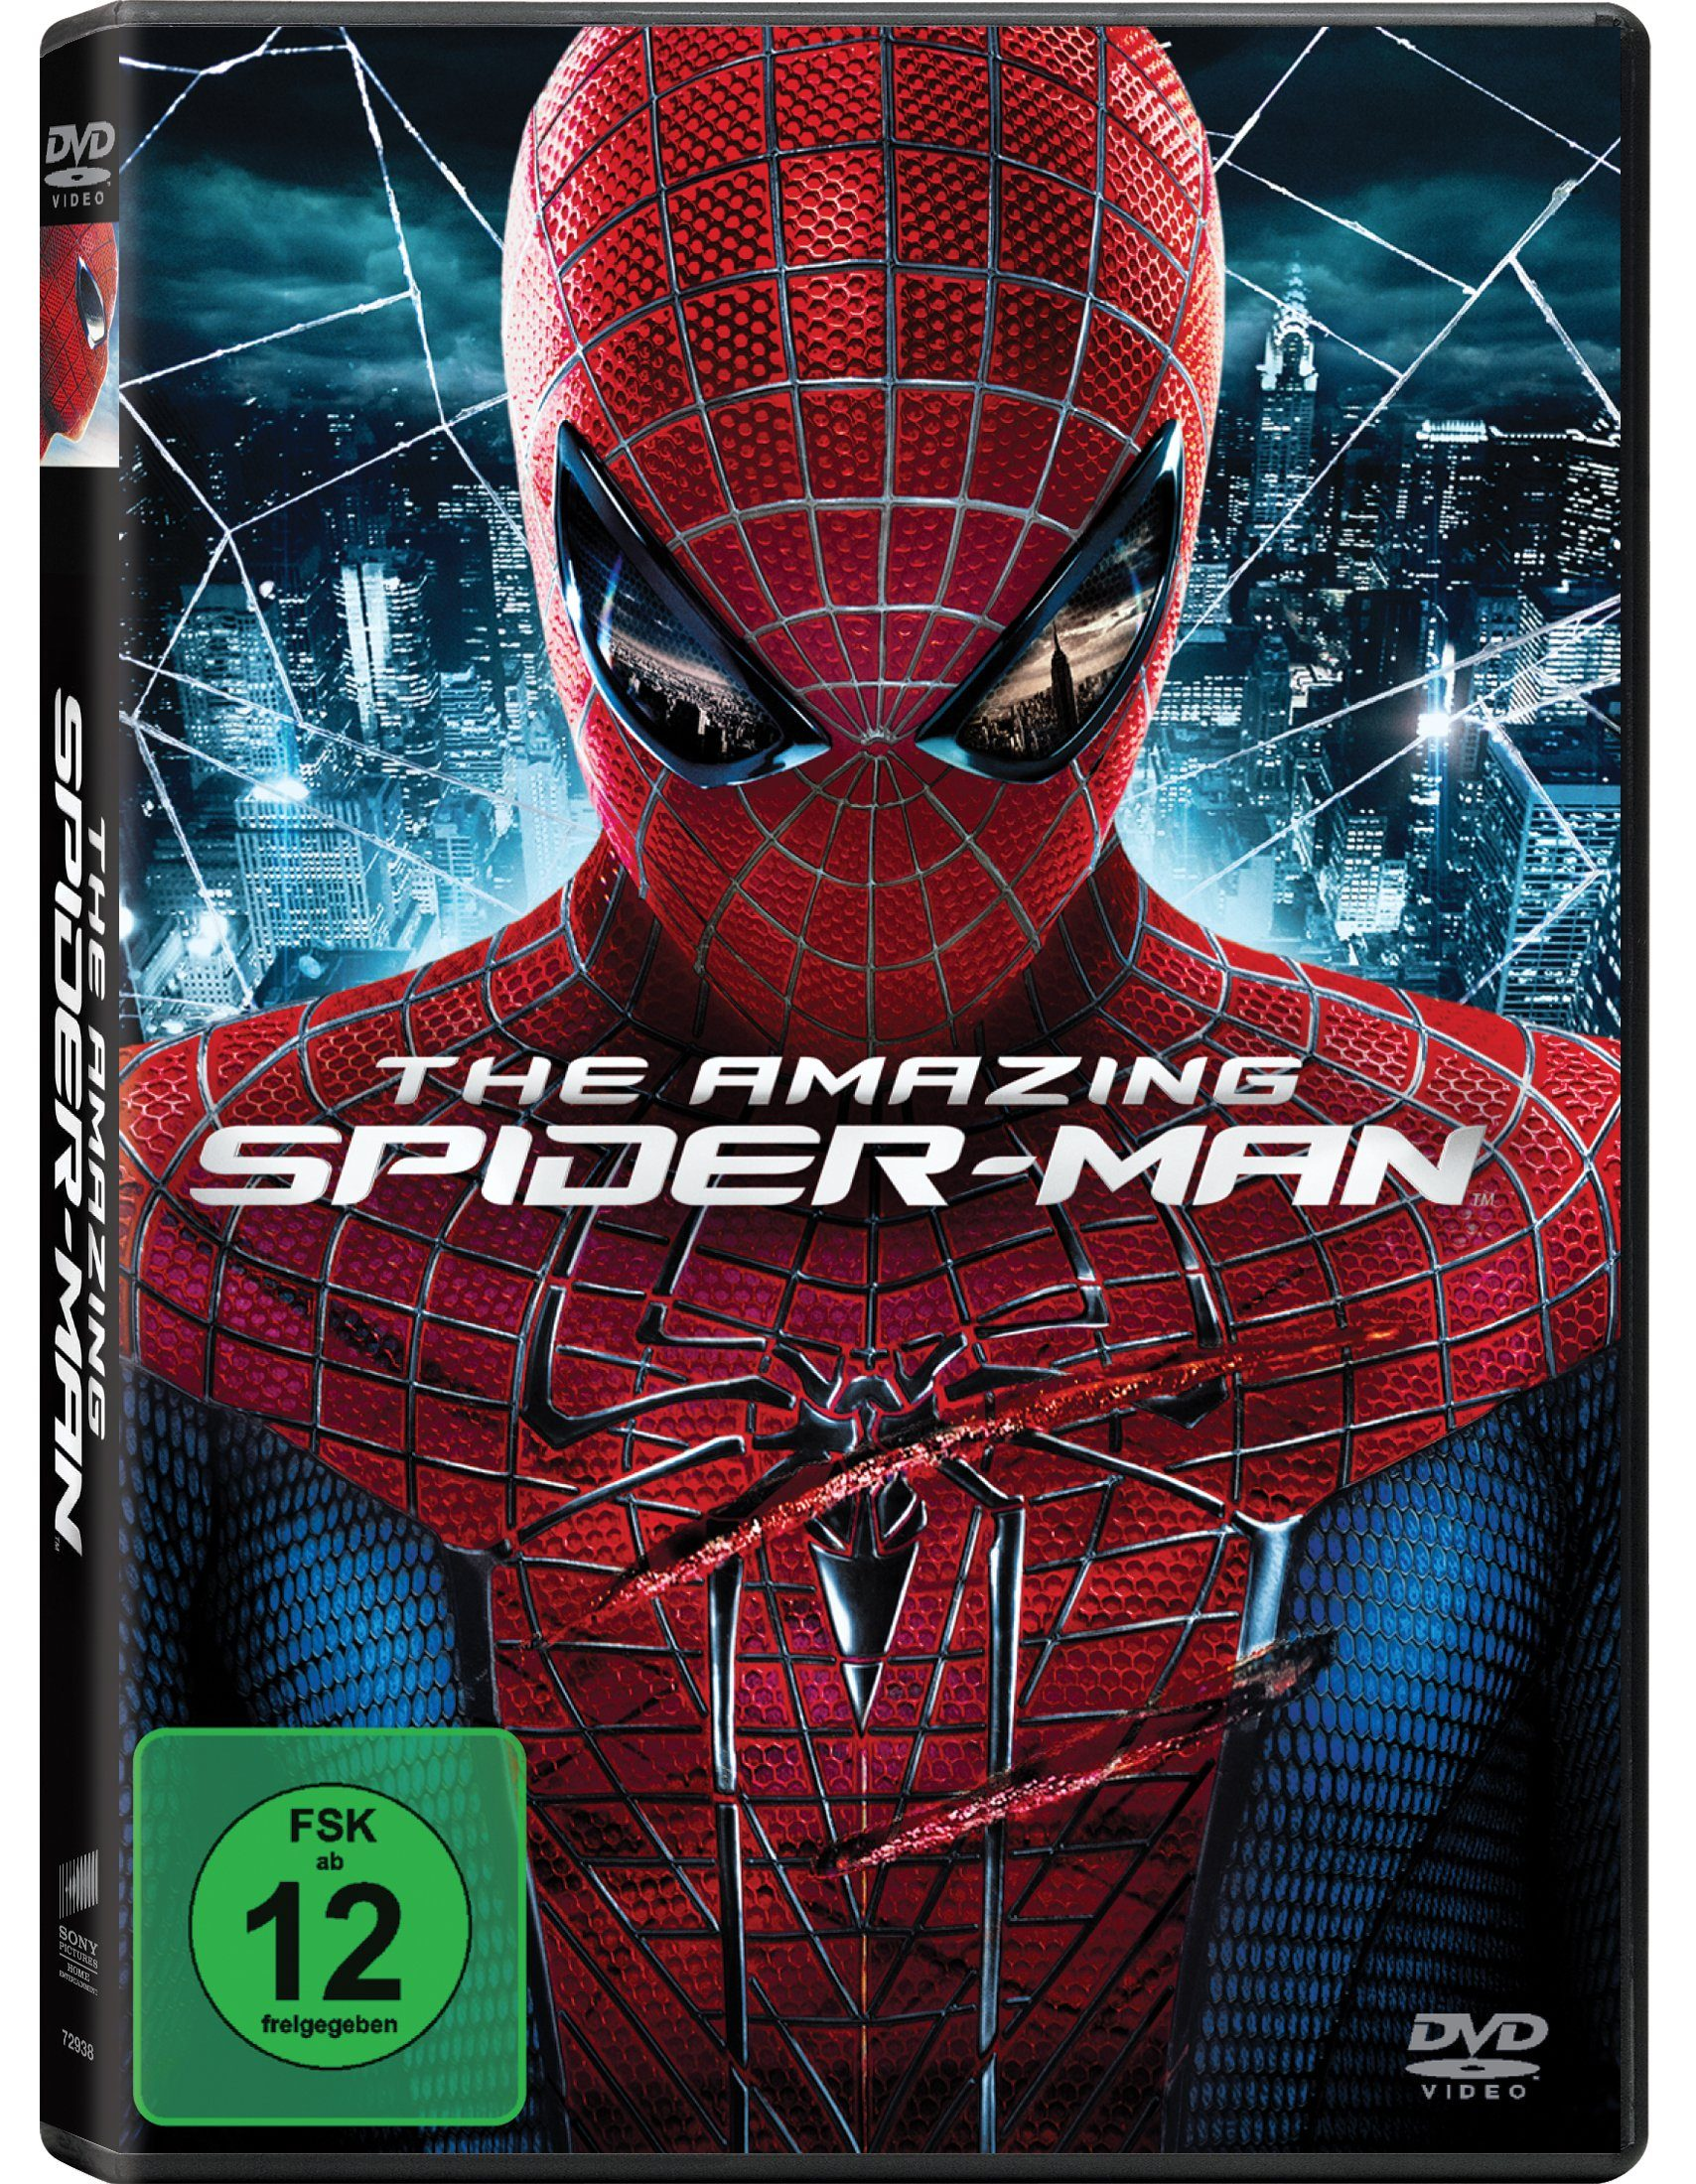 Sony Pictures DVD »The Amazing Spider-Man«